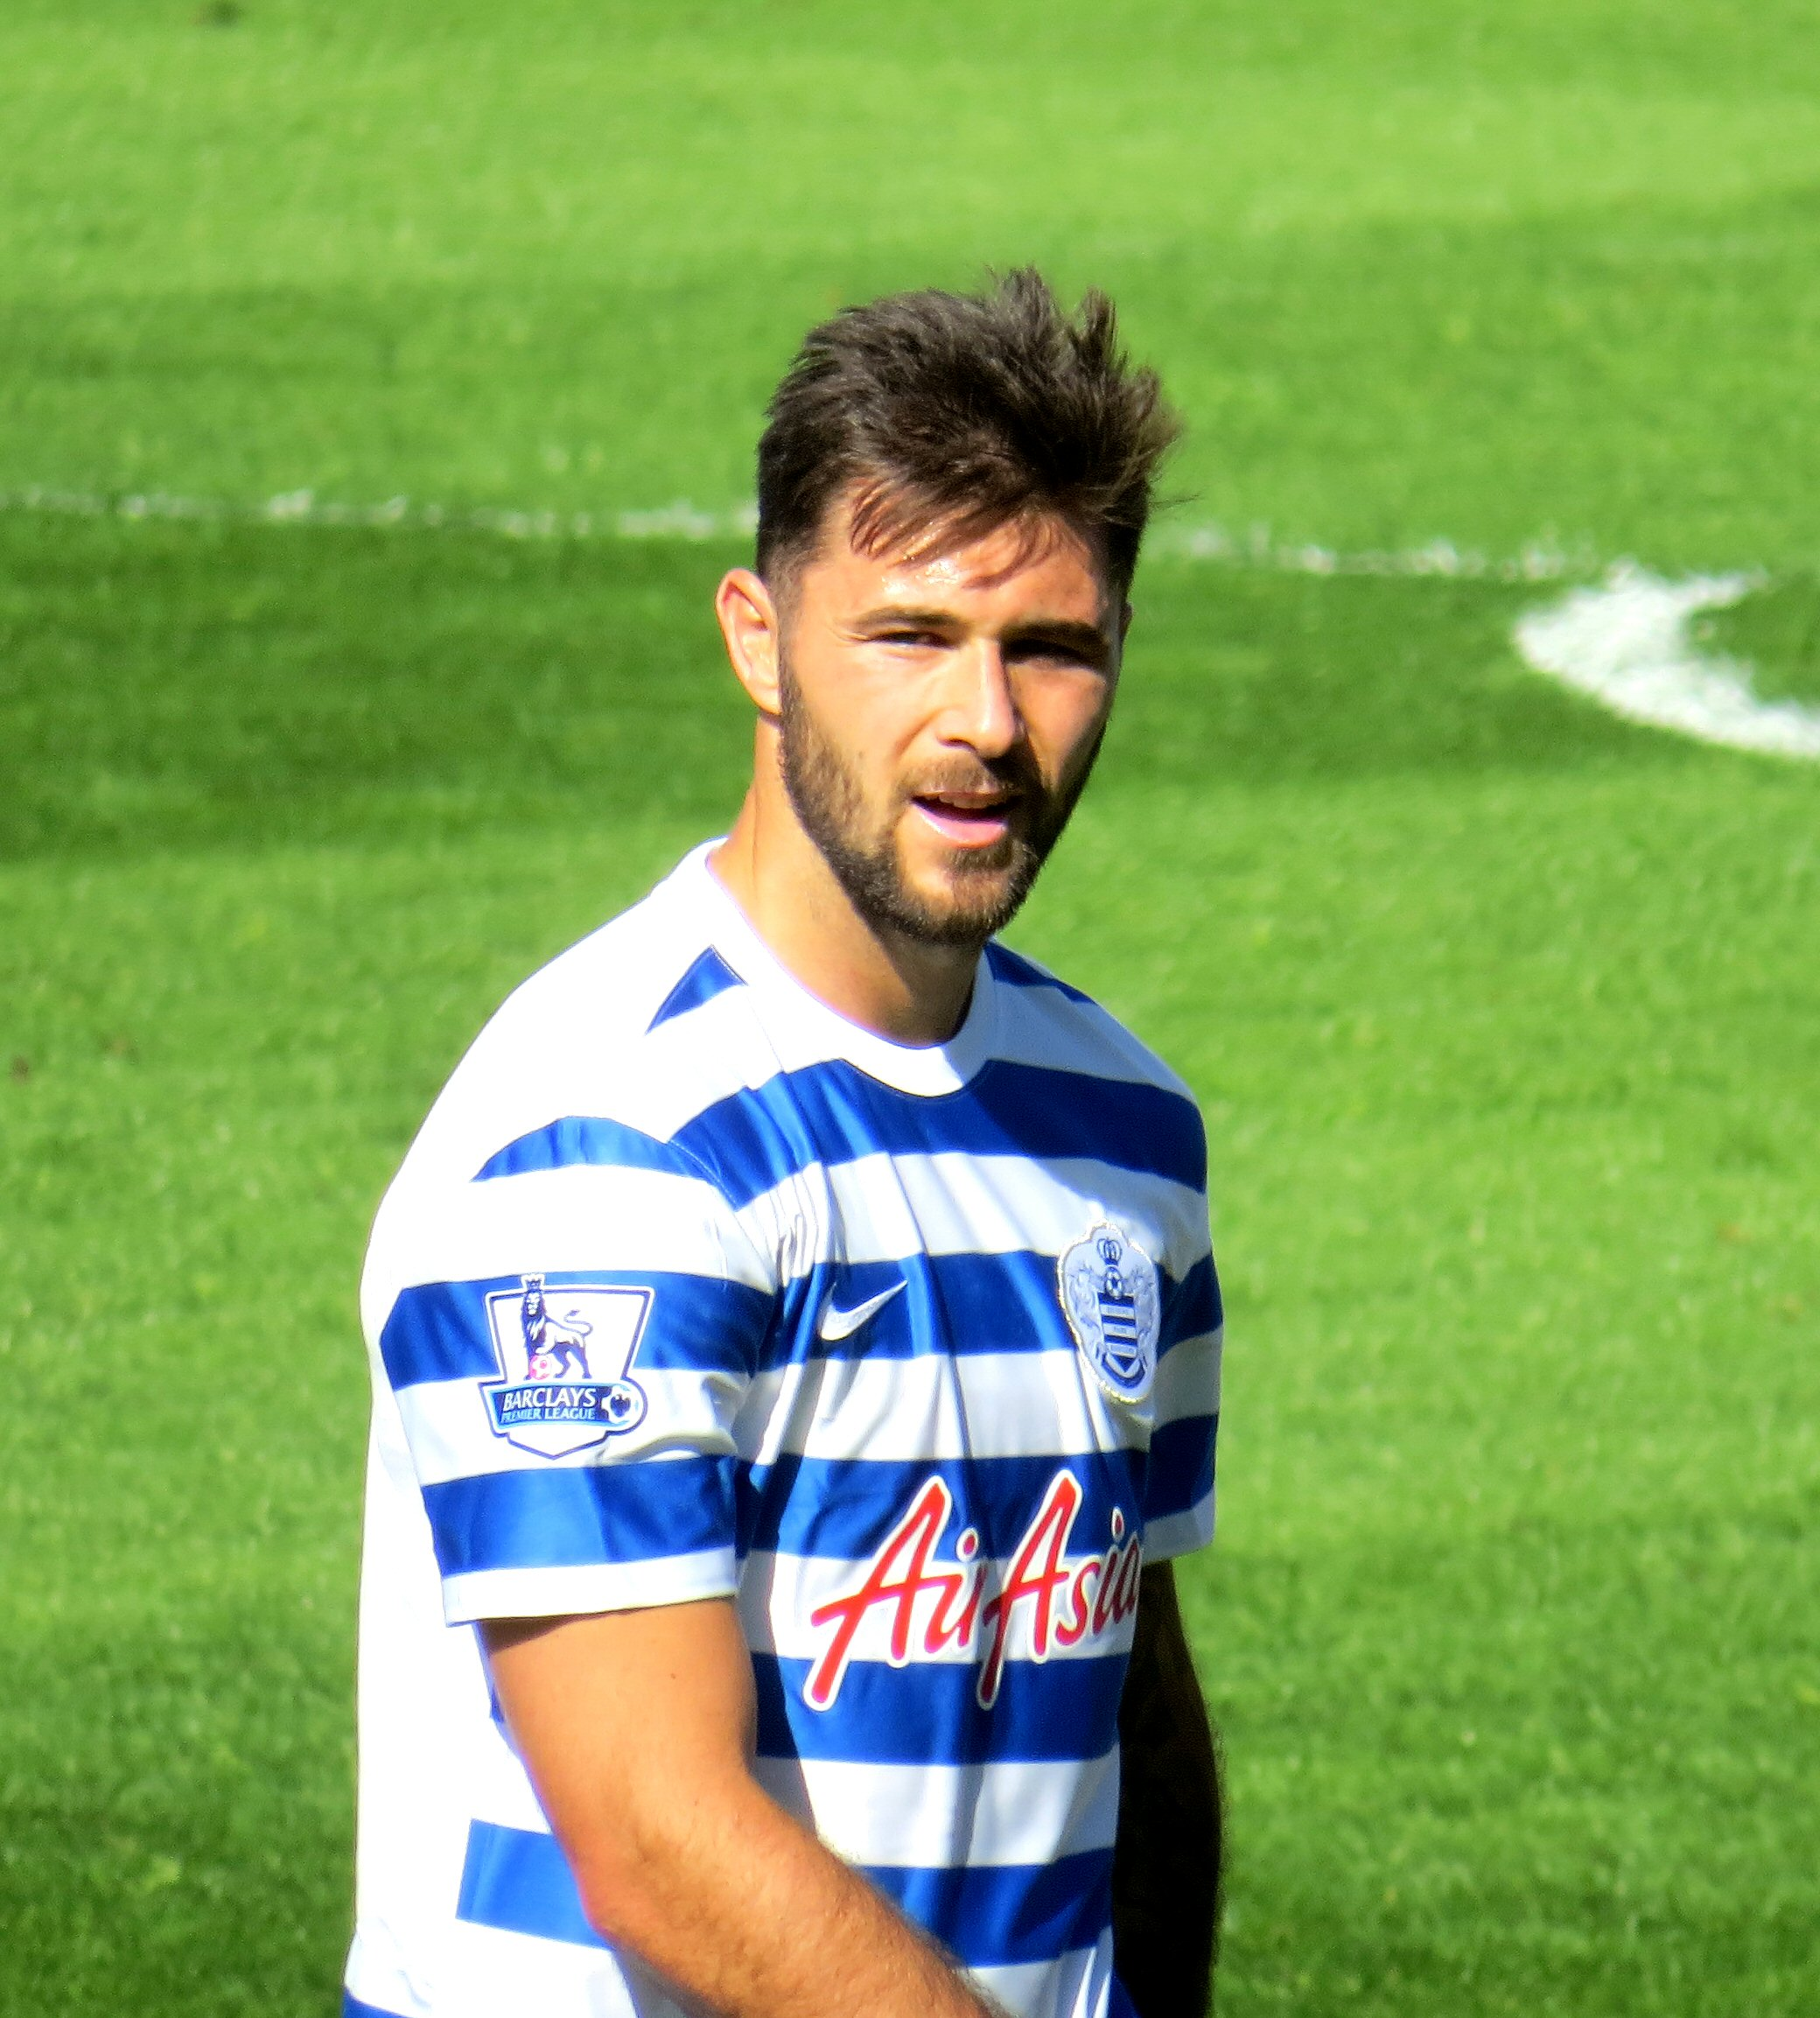 The 29-year old son of father (?) and mother(?) Charlie Austin in 2018 photo. Charlie Austin earned a 2 million dollar salary - leaving the net worth at 7 million in 2018